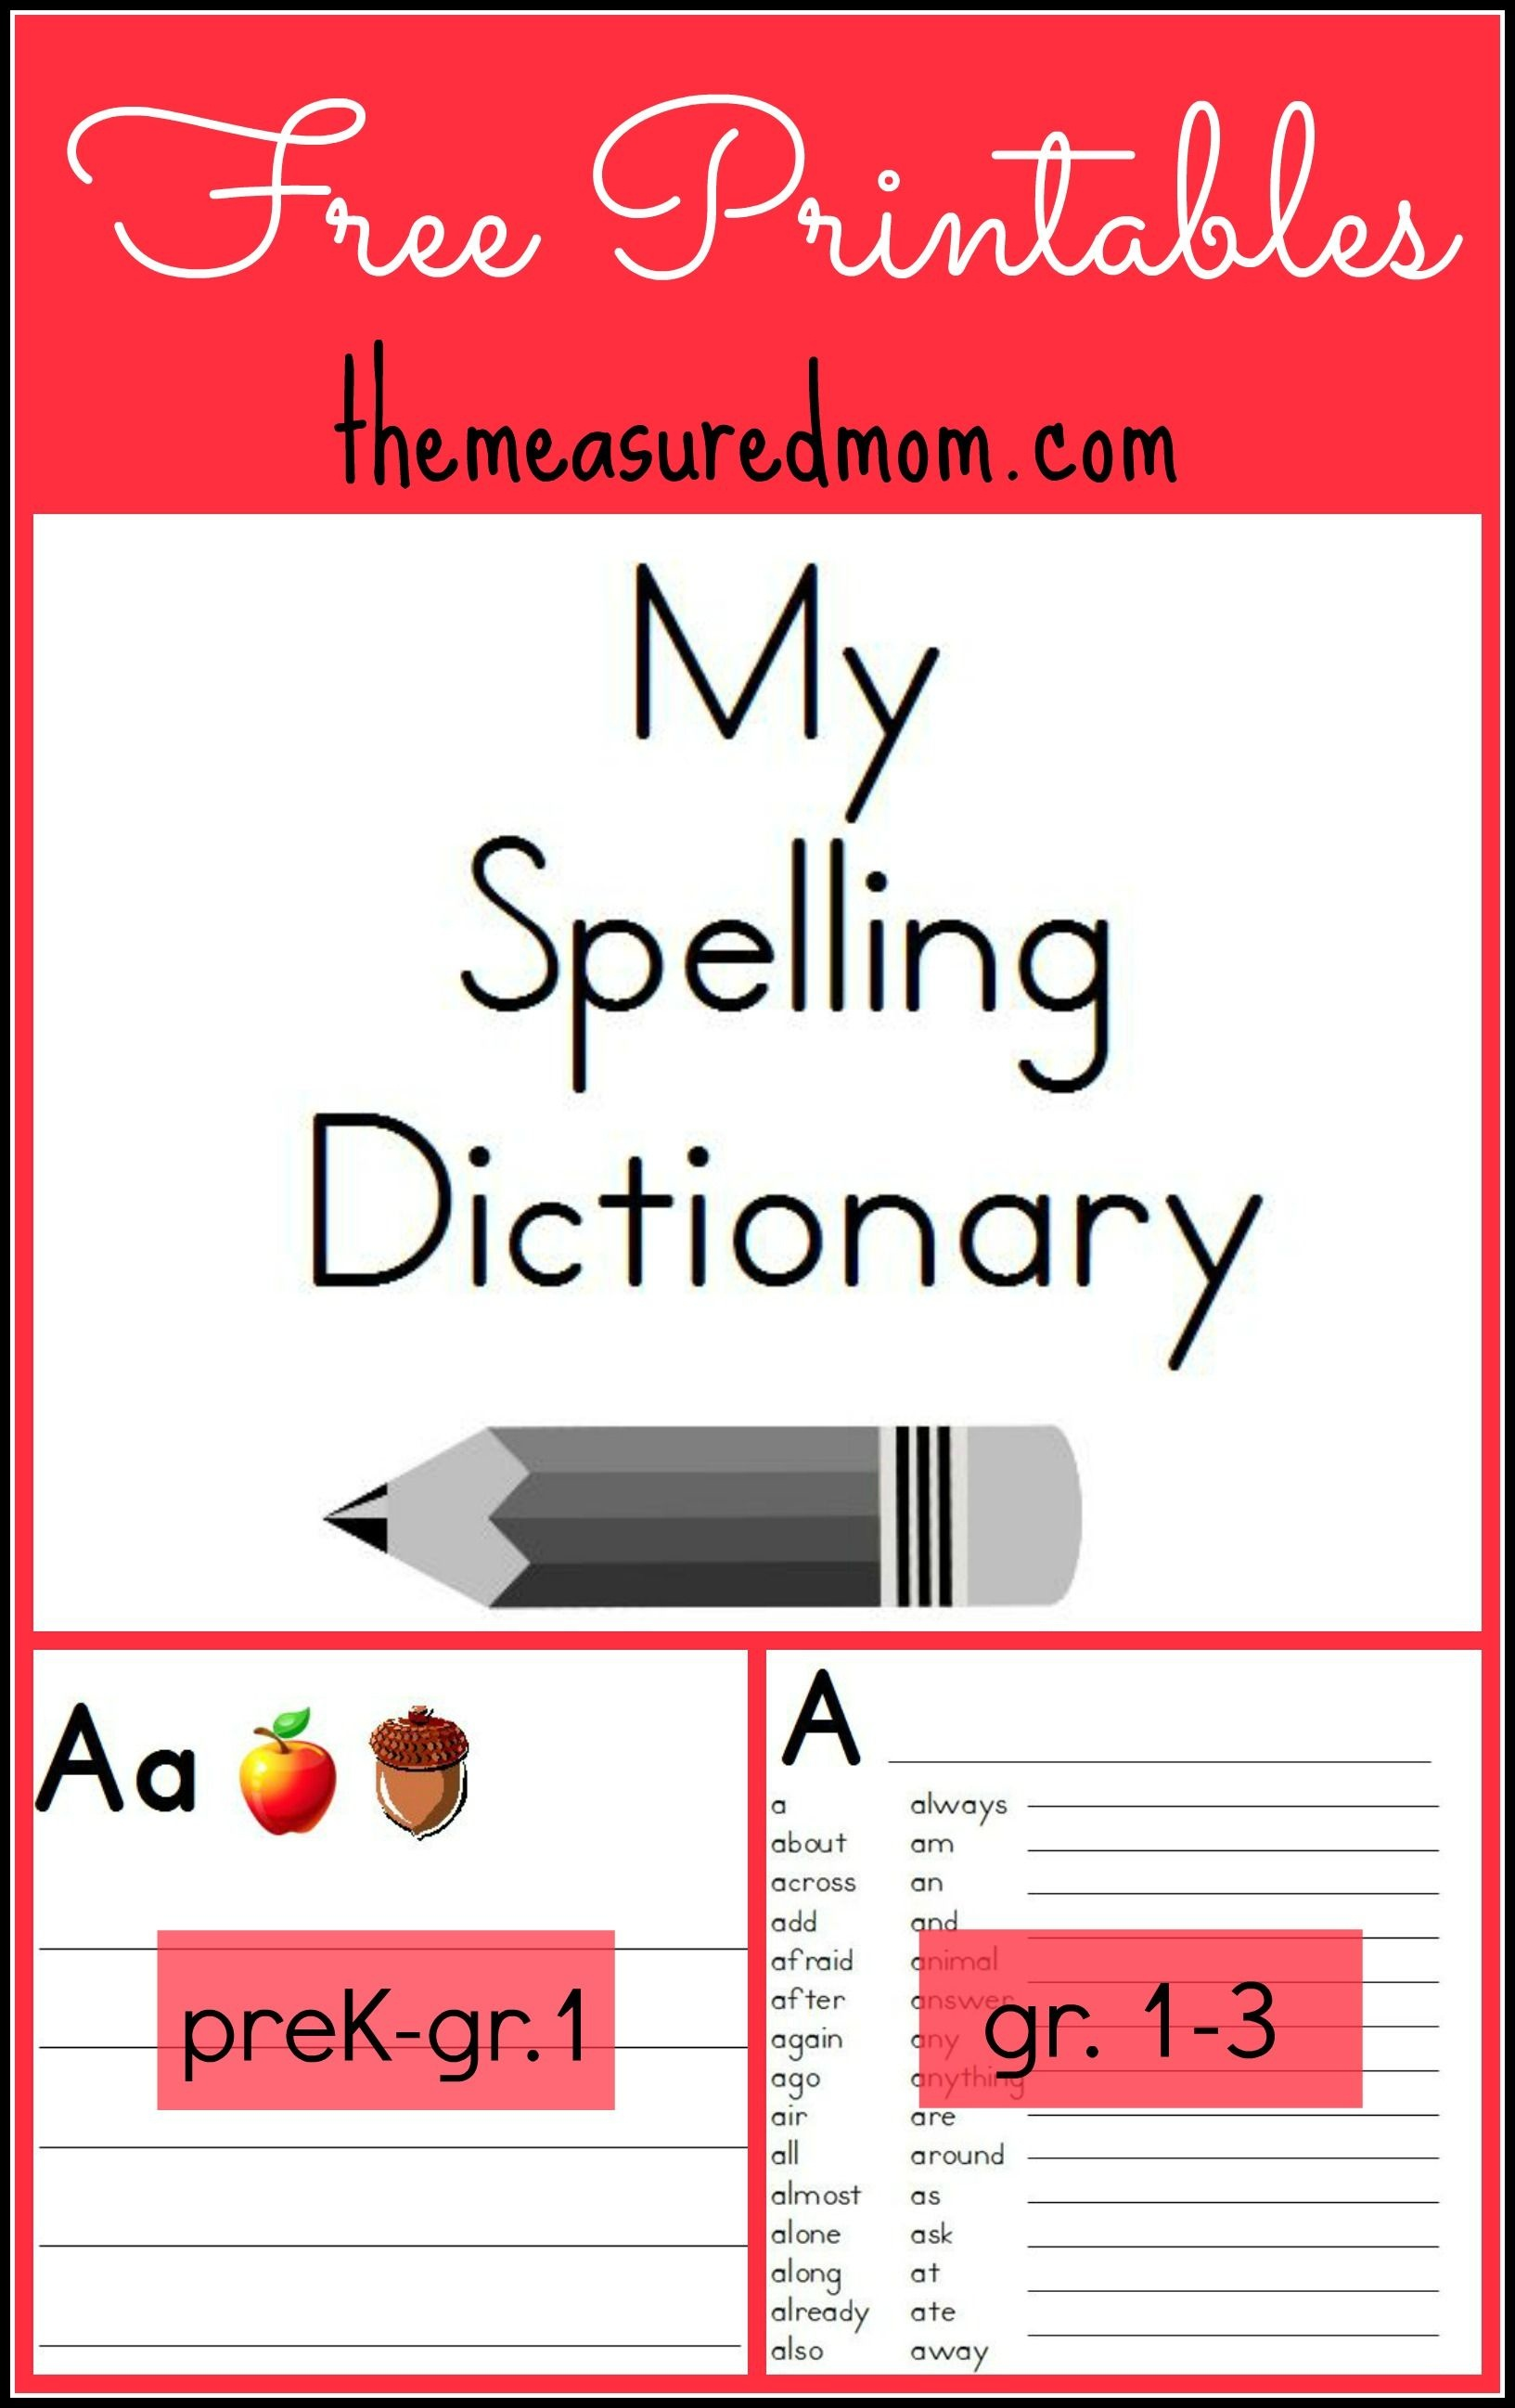 Printable Spelling Dictionary For Kids | Free Printables - Free Printable Picture Dictionary For Kids